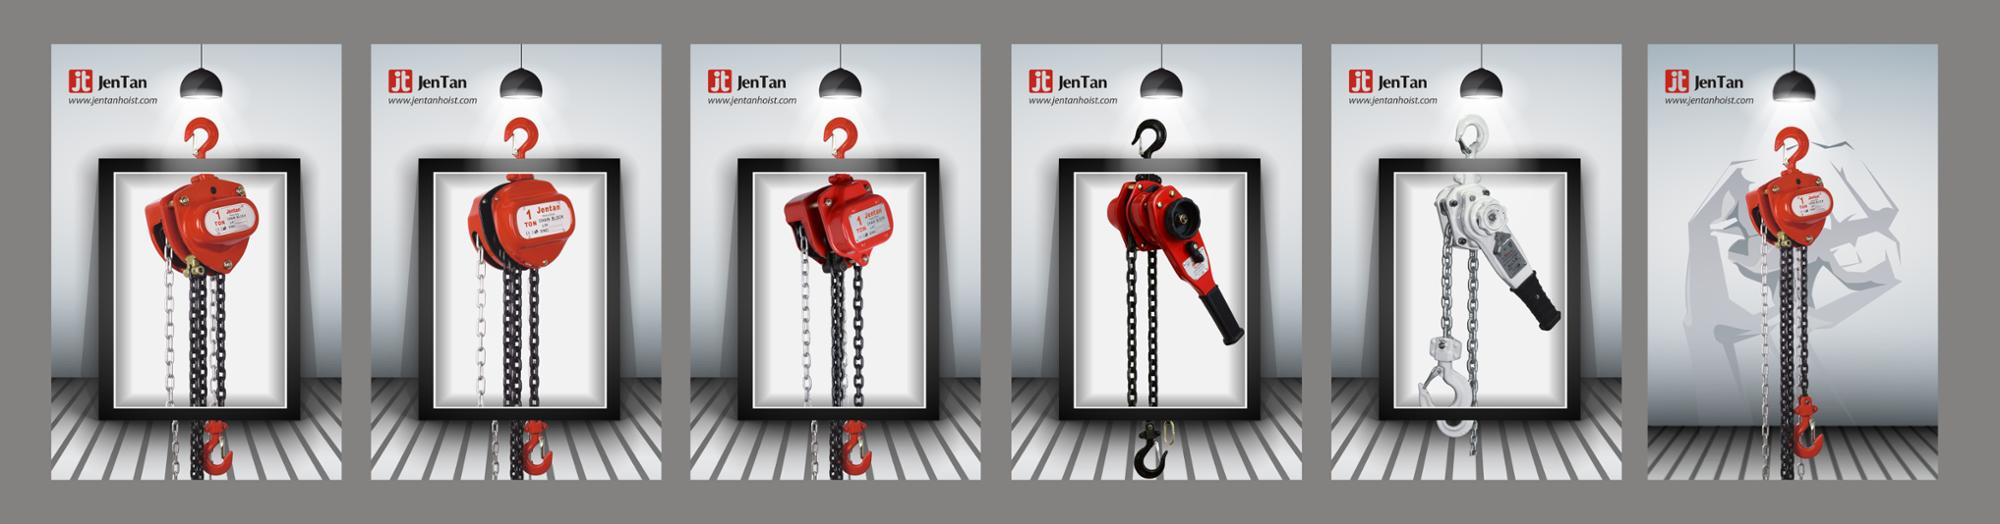 JenTan Manual chain lever block1t 1.5t 3t 6t 9t /lever blocks/lever hoists